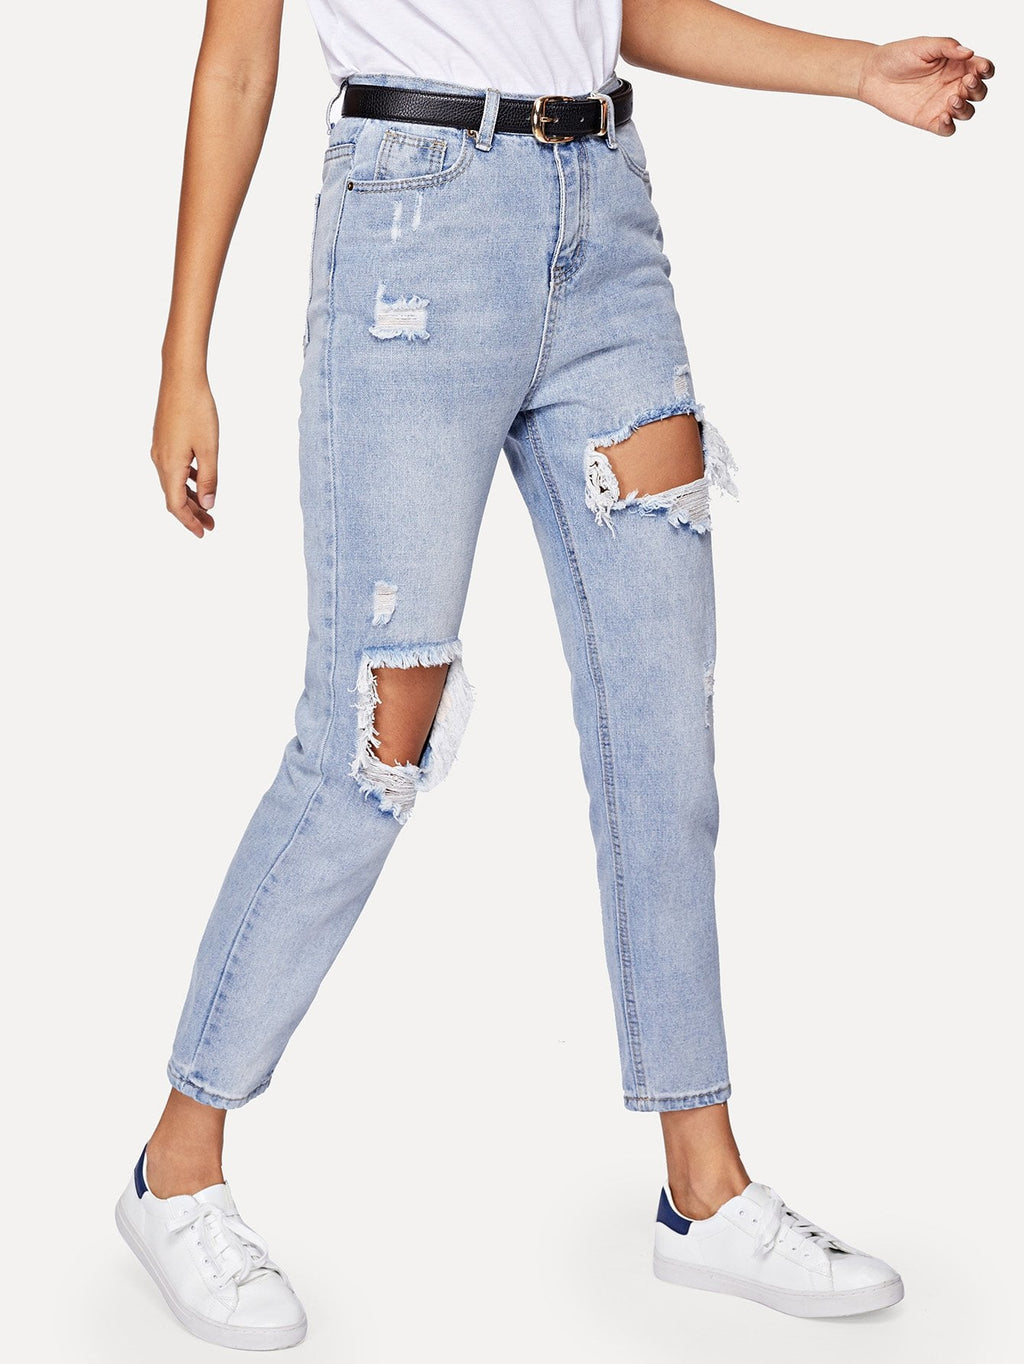 Cut Out Ripped Jeans - spiffy-fashion-boutique